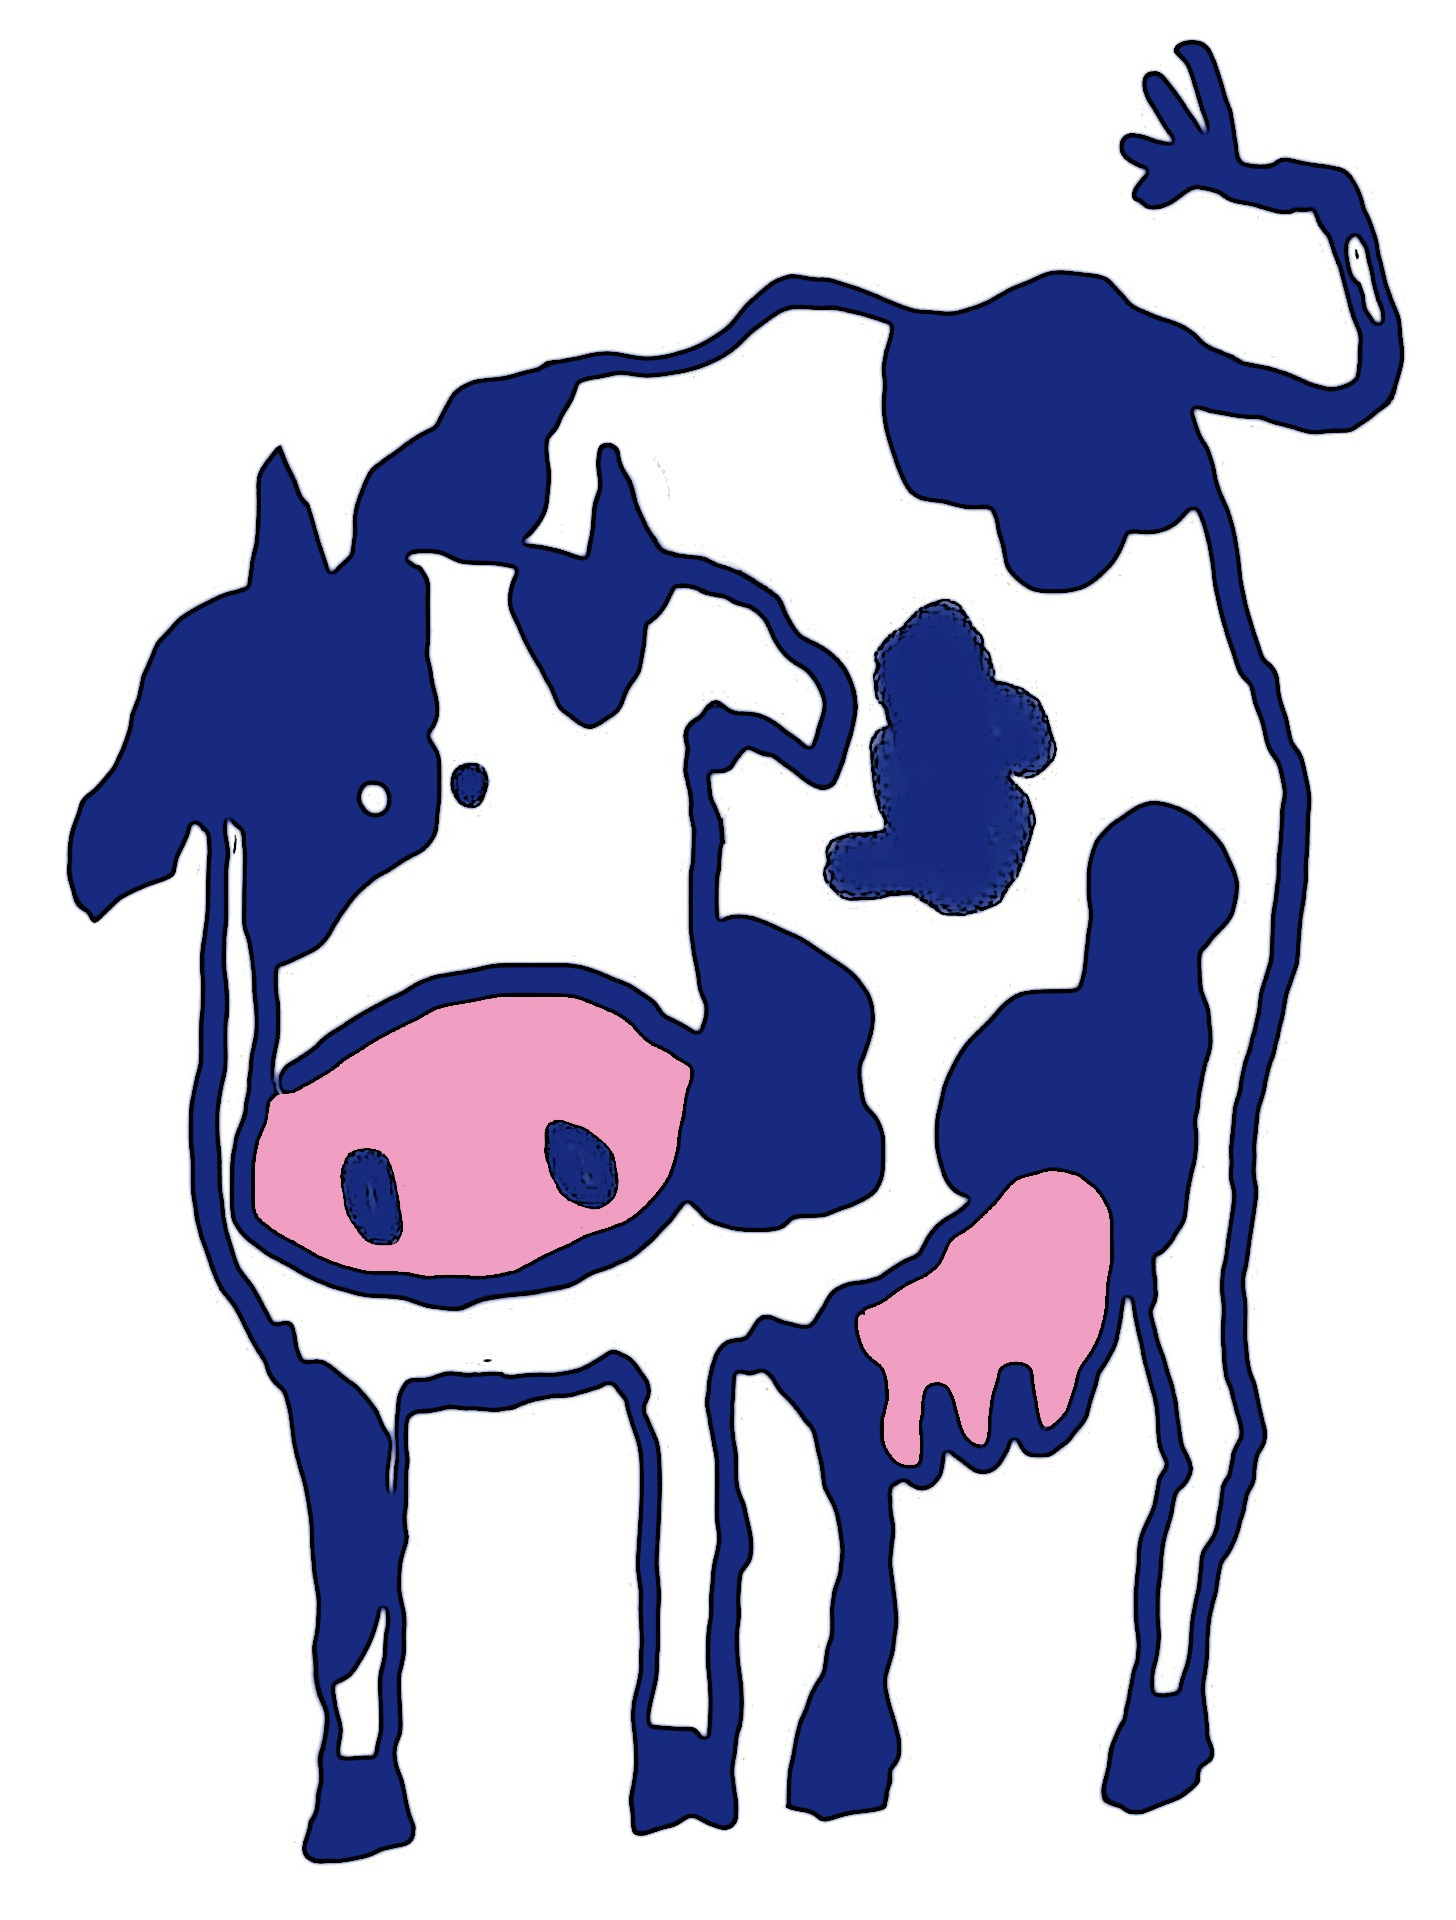 Cattle clipart cow horn. Free images pasture blue